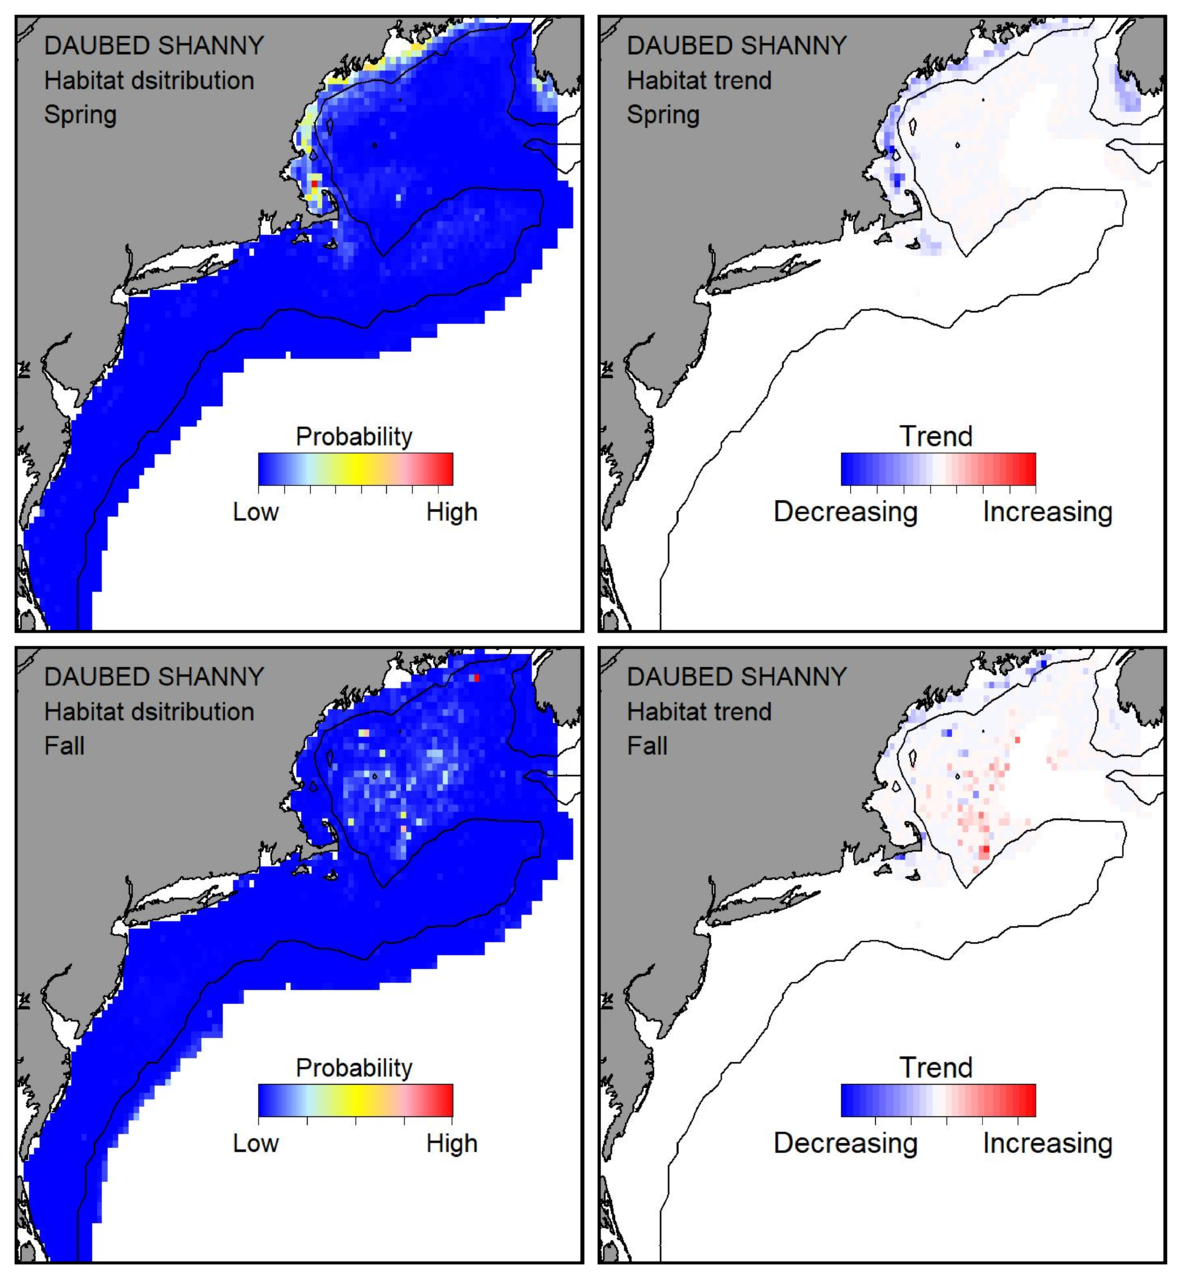 Probable habitat distribution for daubed shanny showing the highest concentration and increasing trend in the Gulf of Maine during the spring. Bottom row: Probable habitat distribution for daubed shanny showing the highest concentration and increasing trend in the Gulf of Maine during the fall.